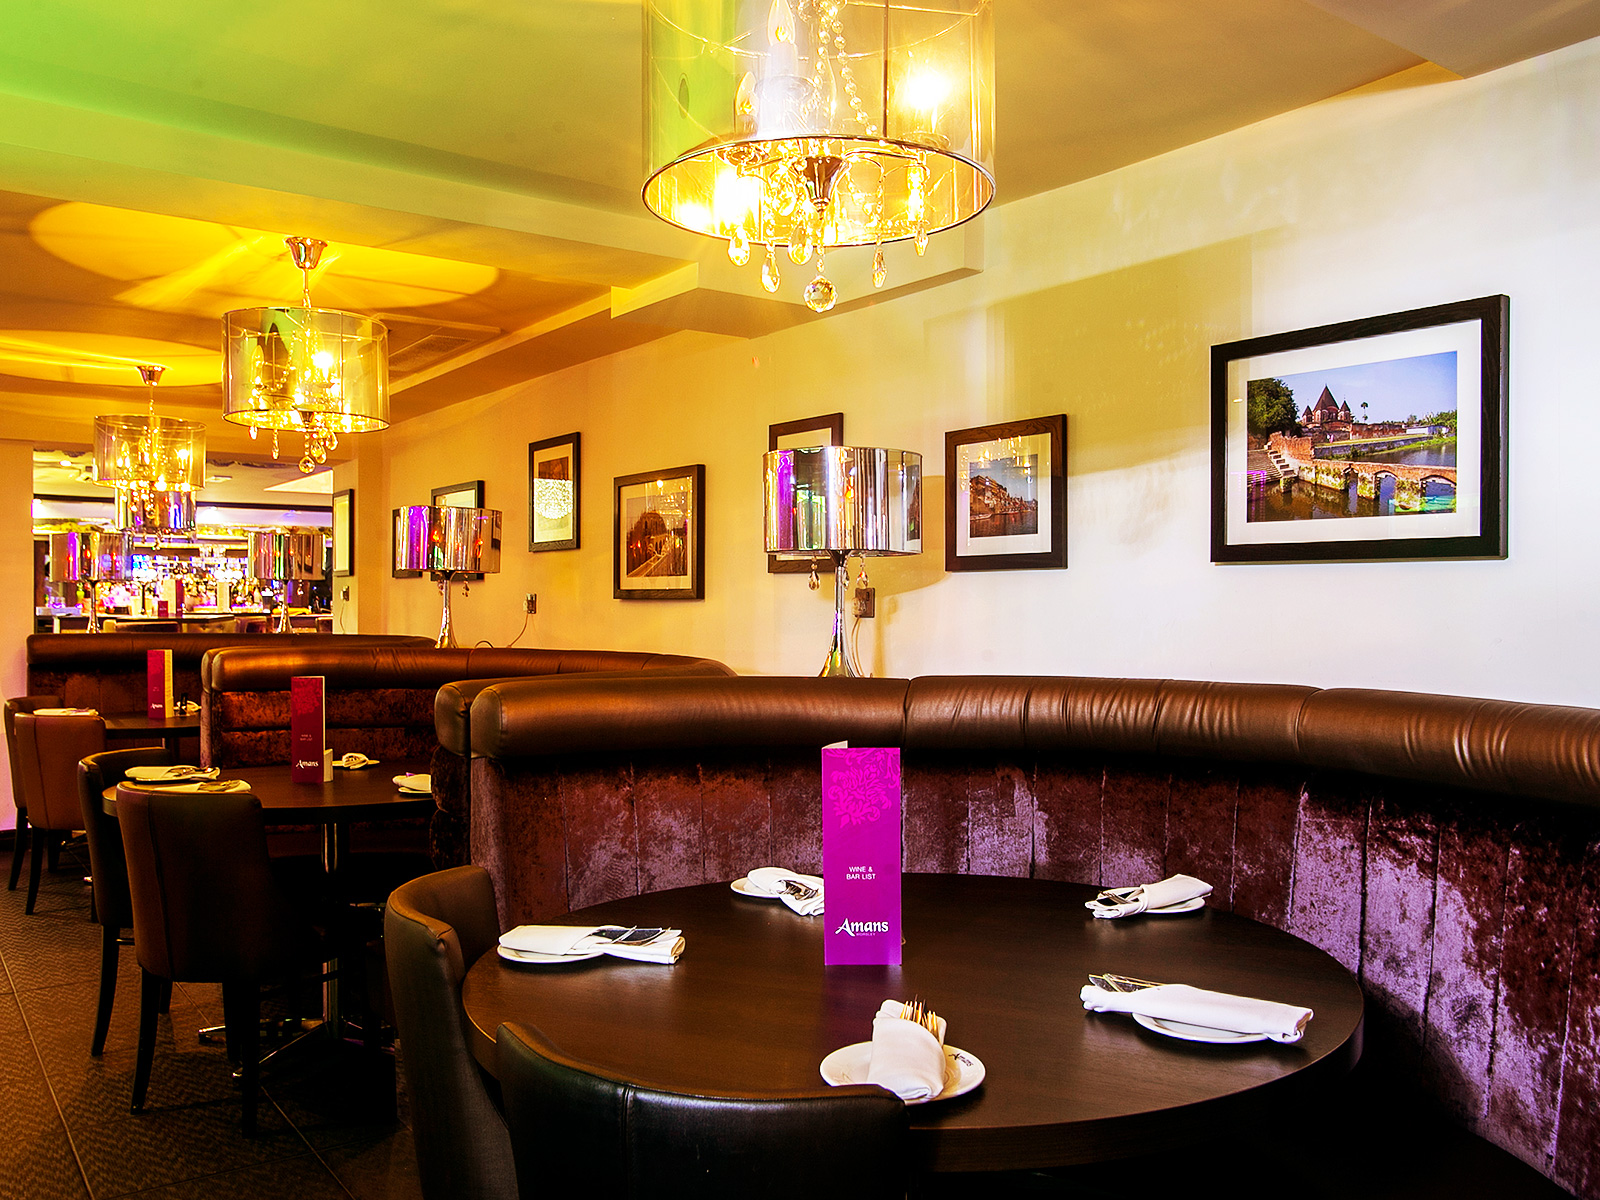 Amans worsley for Amans indian cuisine